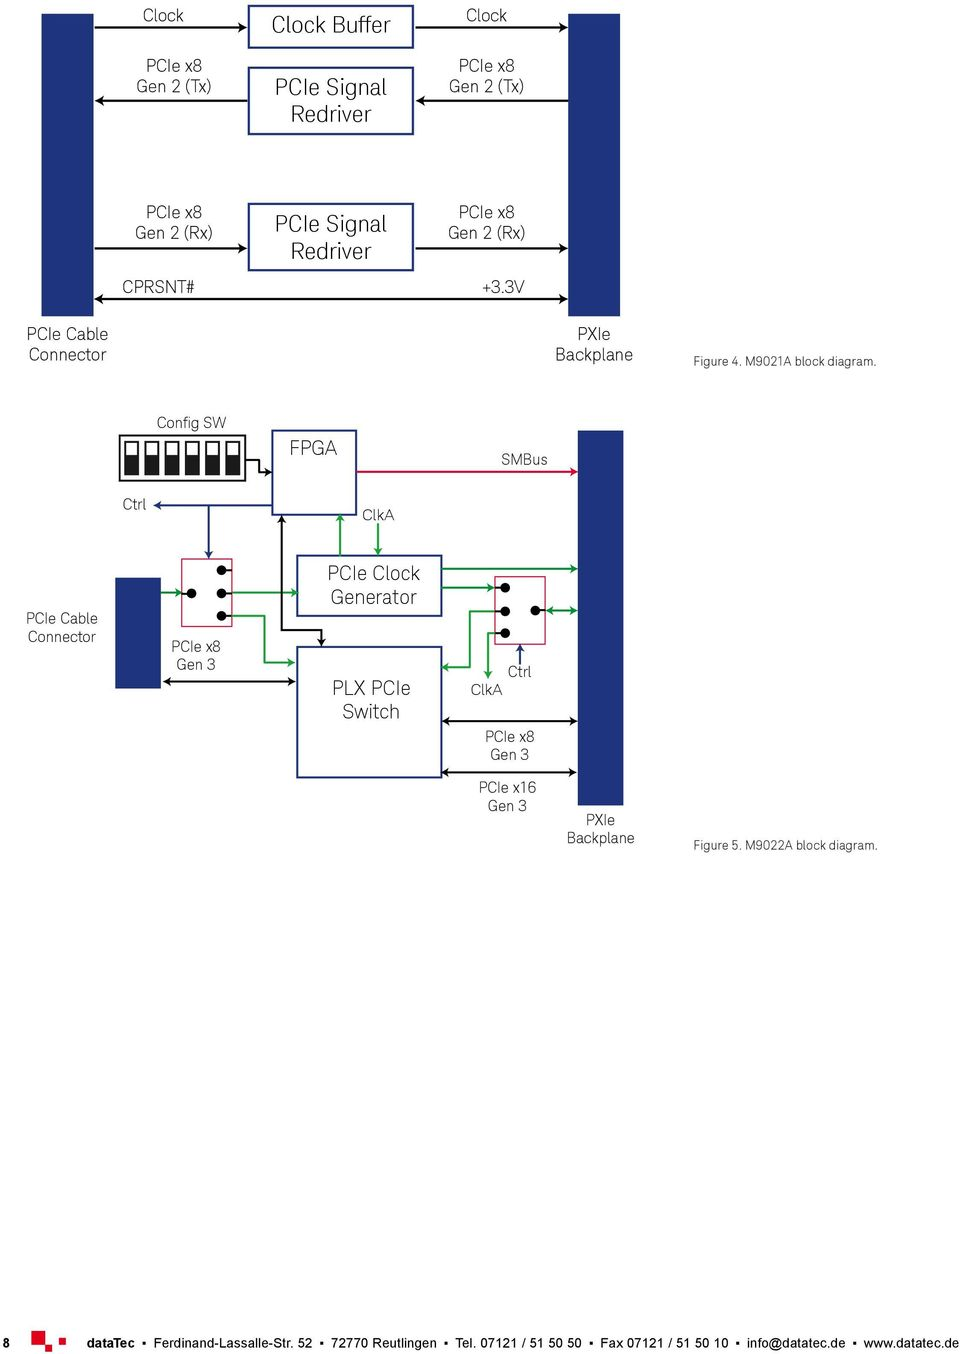 Redriver Gen 2 (Rx) +3.3V PXIe Backplane Figure 4. M9021A block diagram.